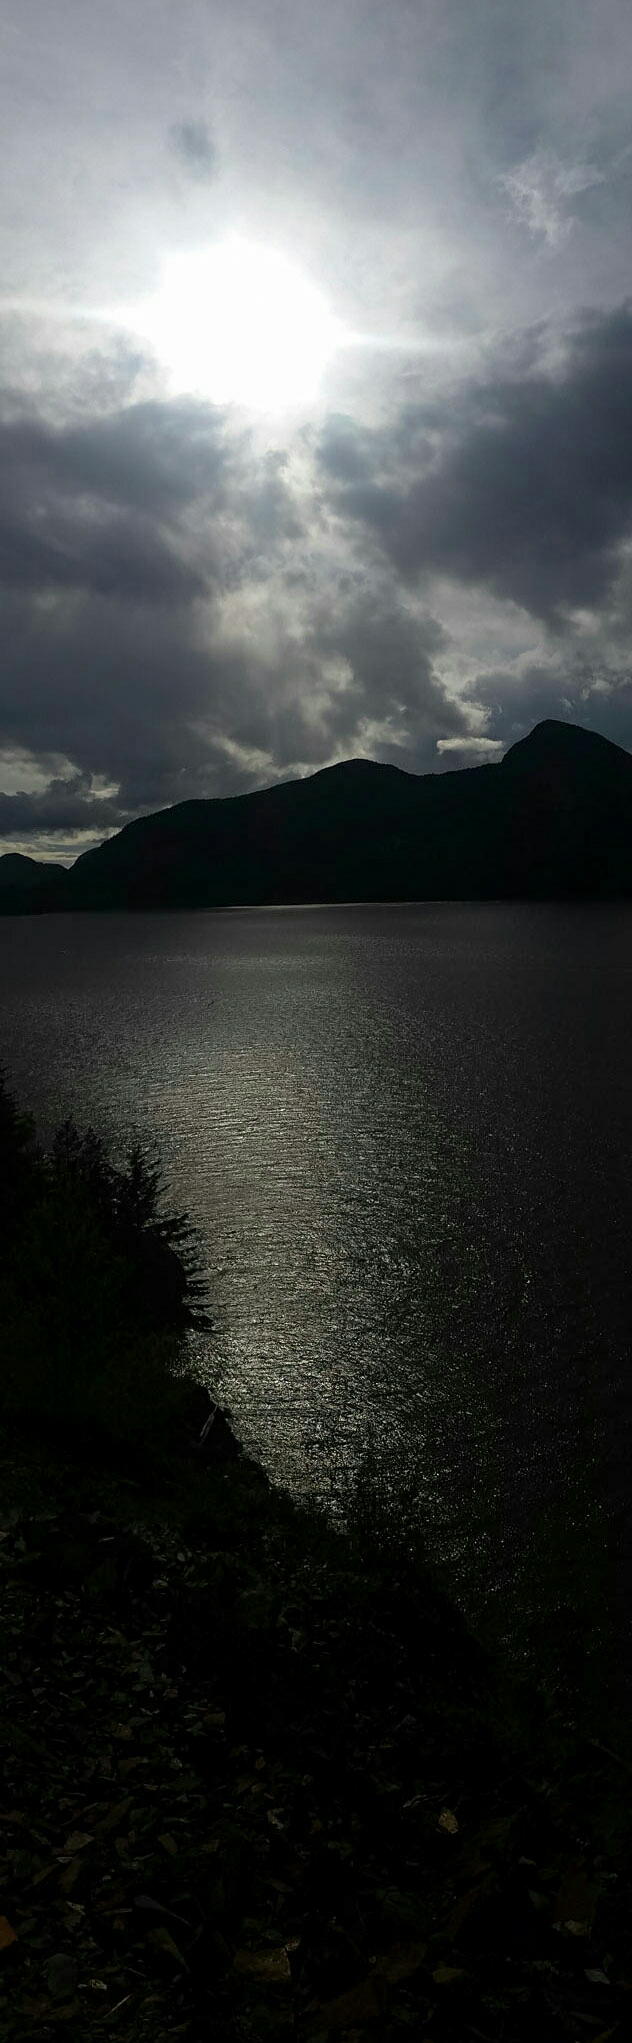 Sun and Sea, Howe Sound, Sea to Sky Highway, British Columbia, Canada